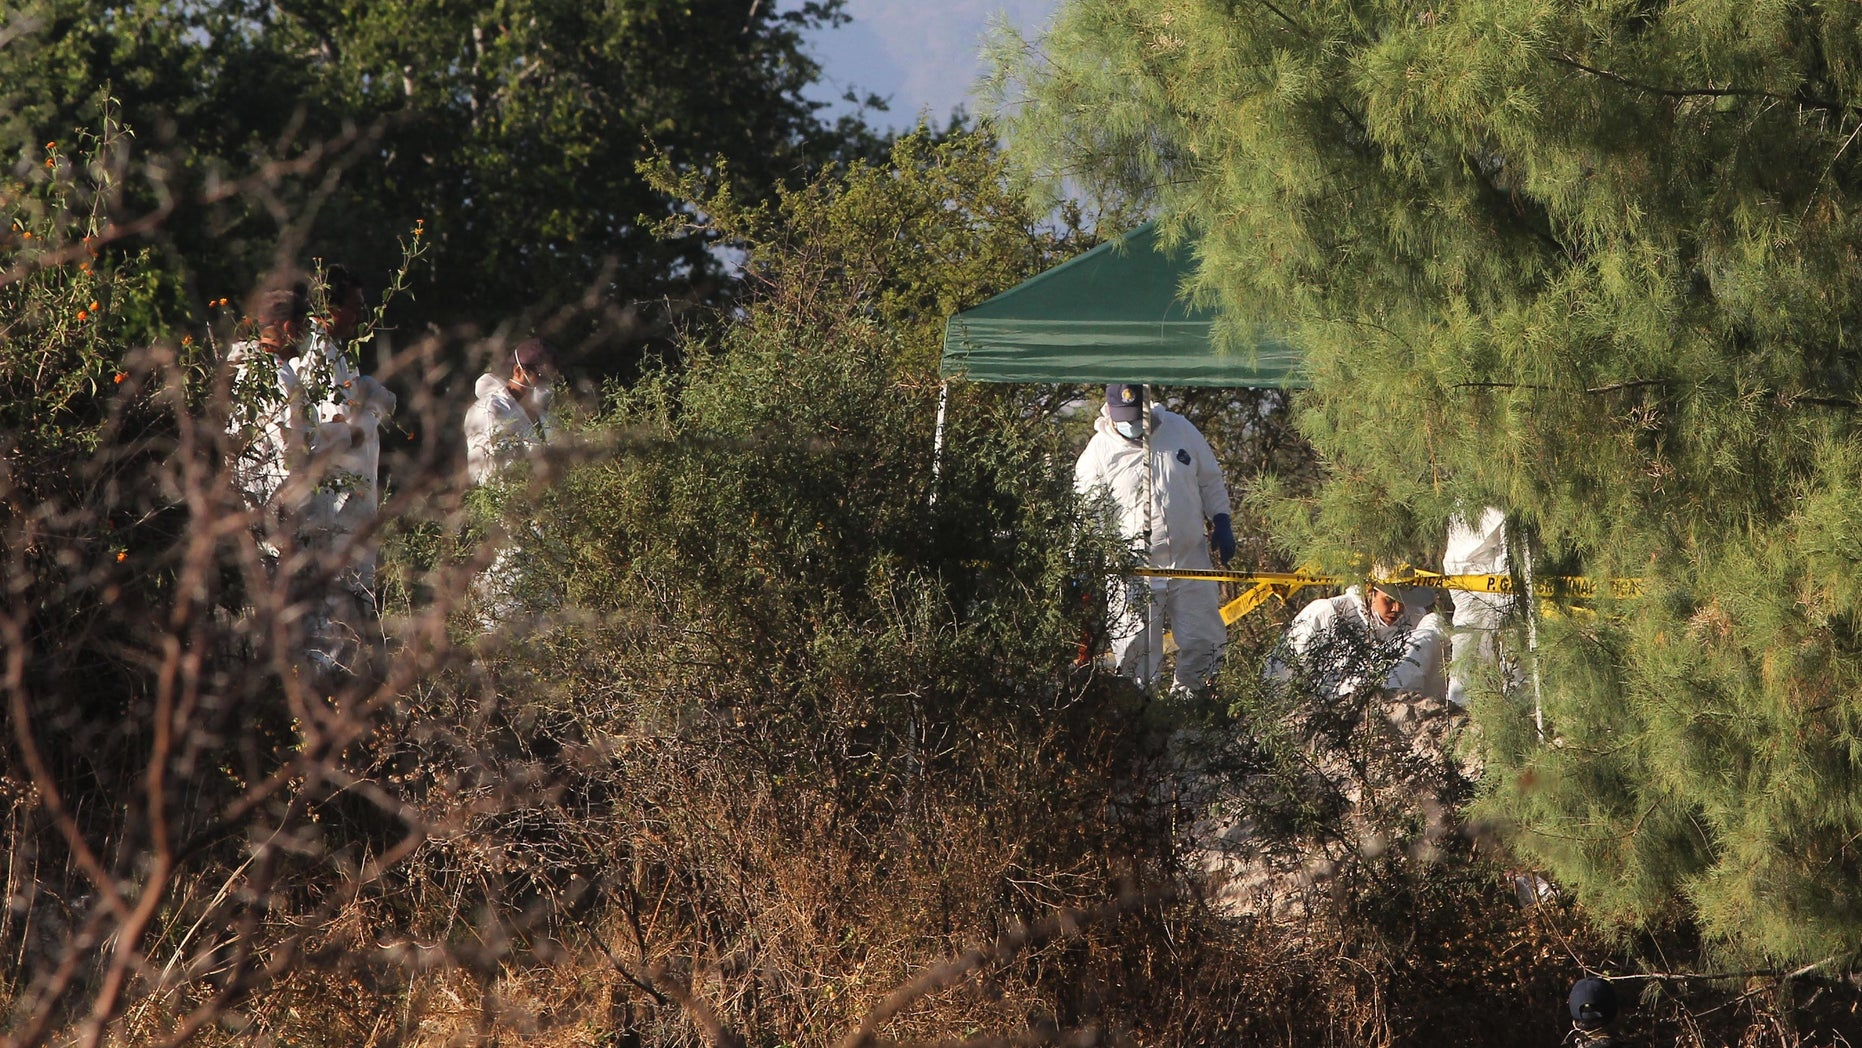 Forensic workers continue their search for bodies after several clandestine graves were found near the town of La Barca, western Mexico, Monday, Nov. 25, 2013. The number of bodies found in almost two dozen clandestine graves at the site has risen to 42, after five more corpses were discovered over the weekend. Agents were led to the 22 mass graves by local police officers who confessed to working with a drug cartel. (AP Photo)